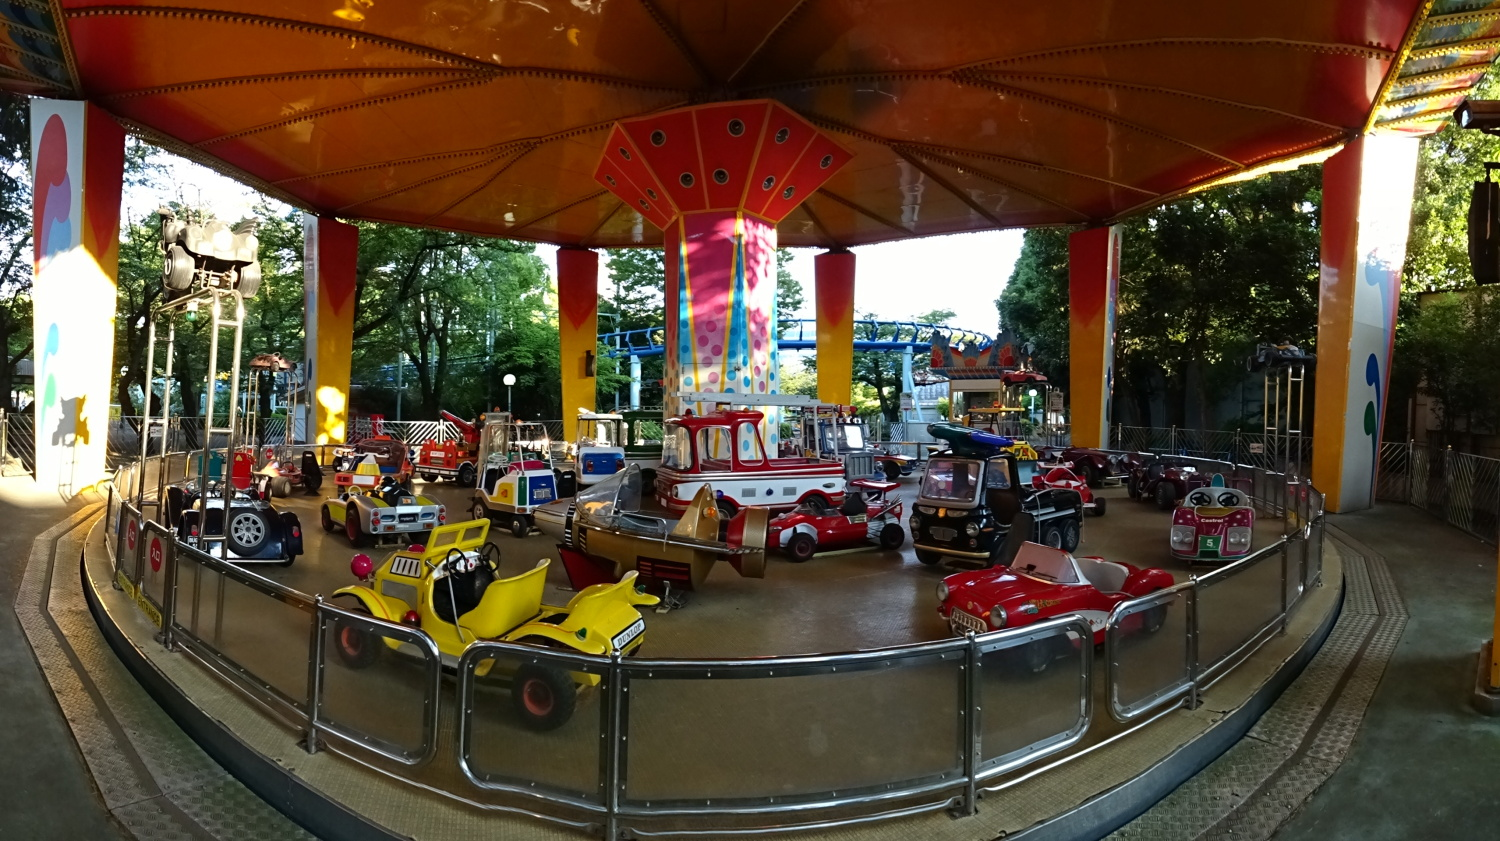 Merry-go-round of super car